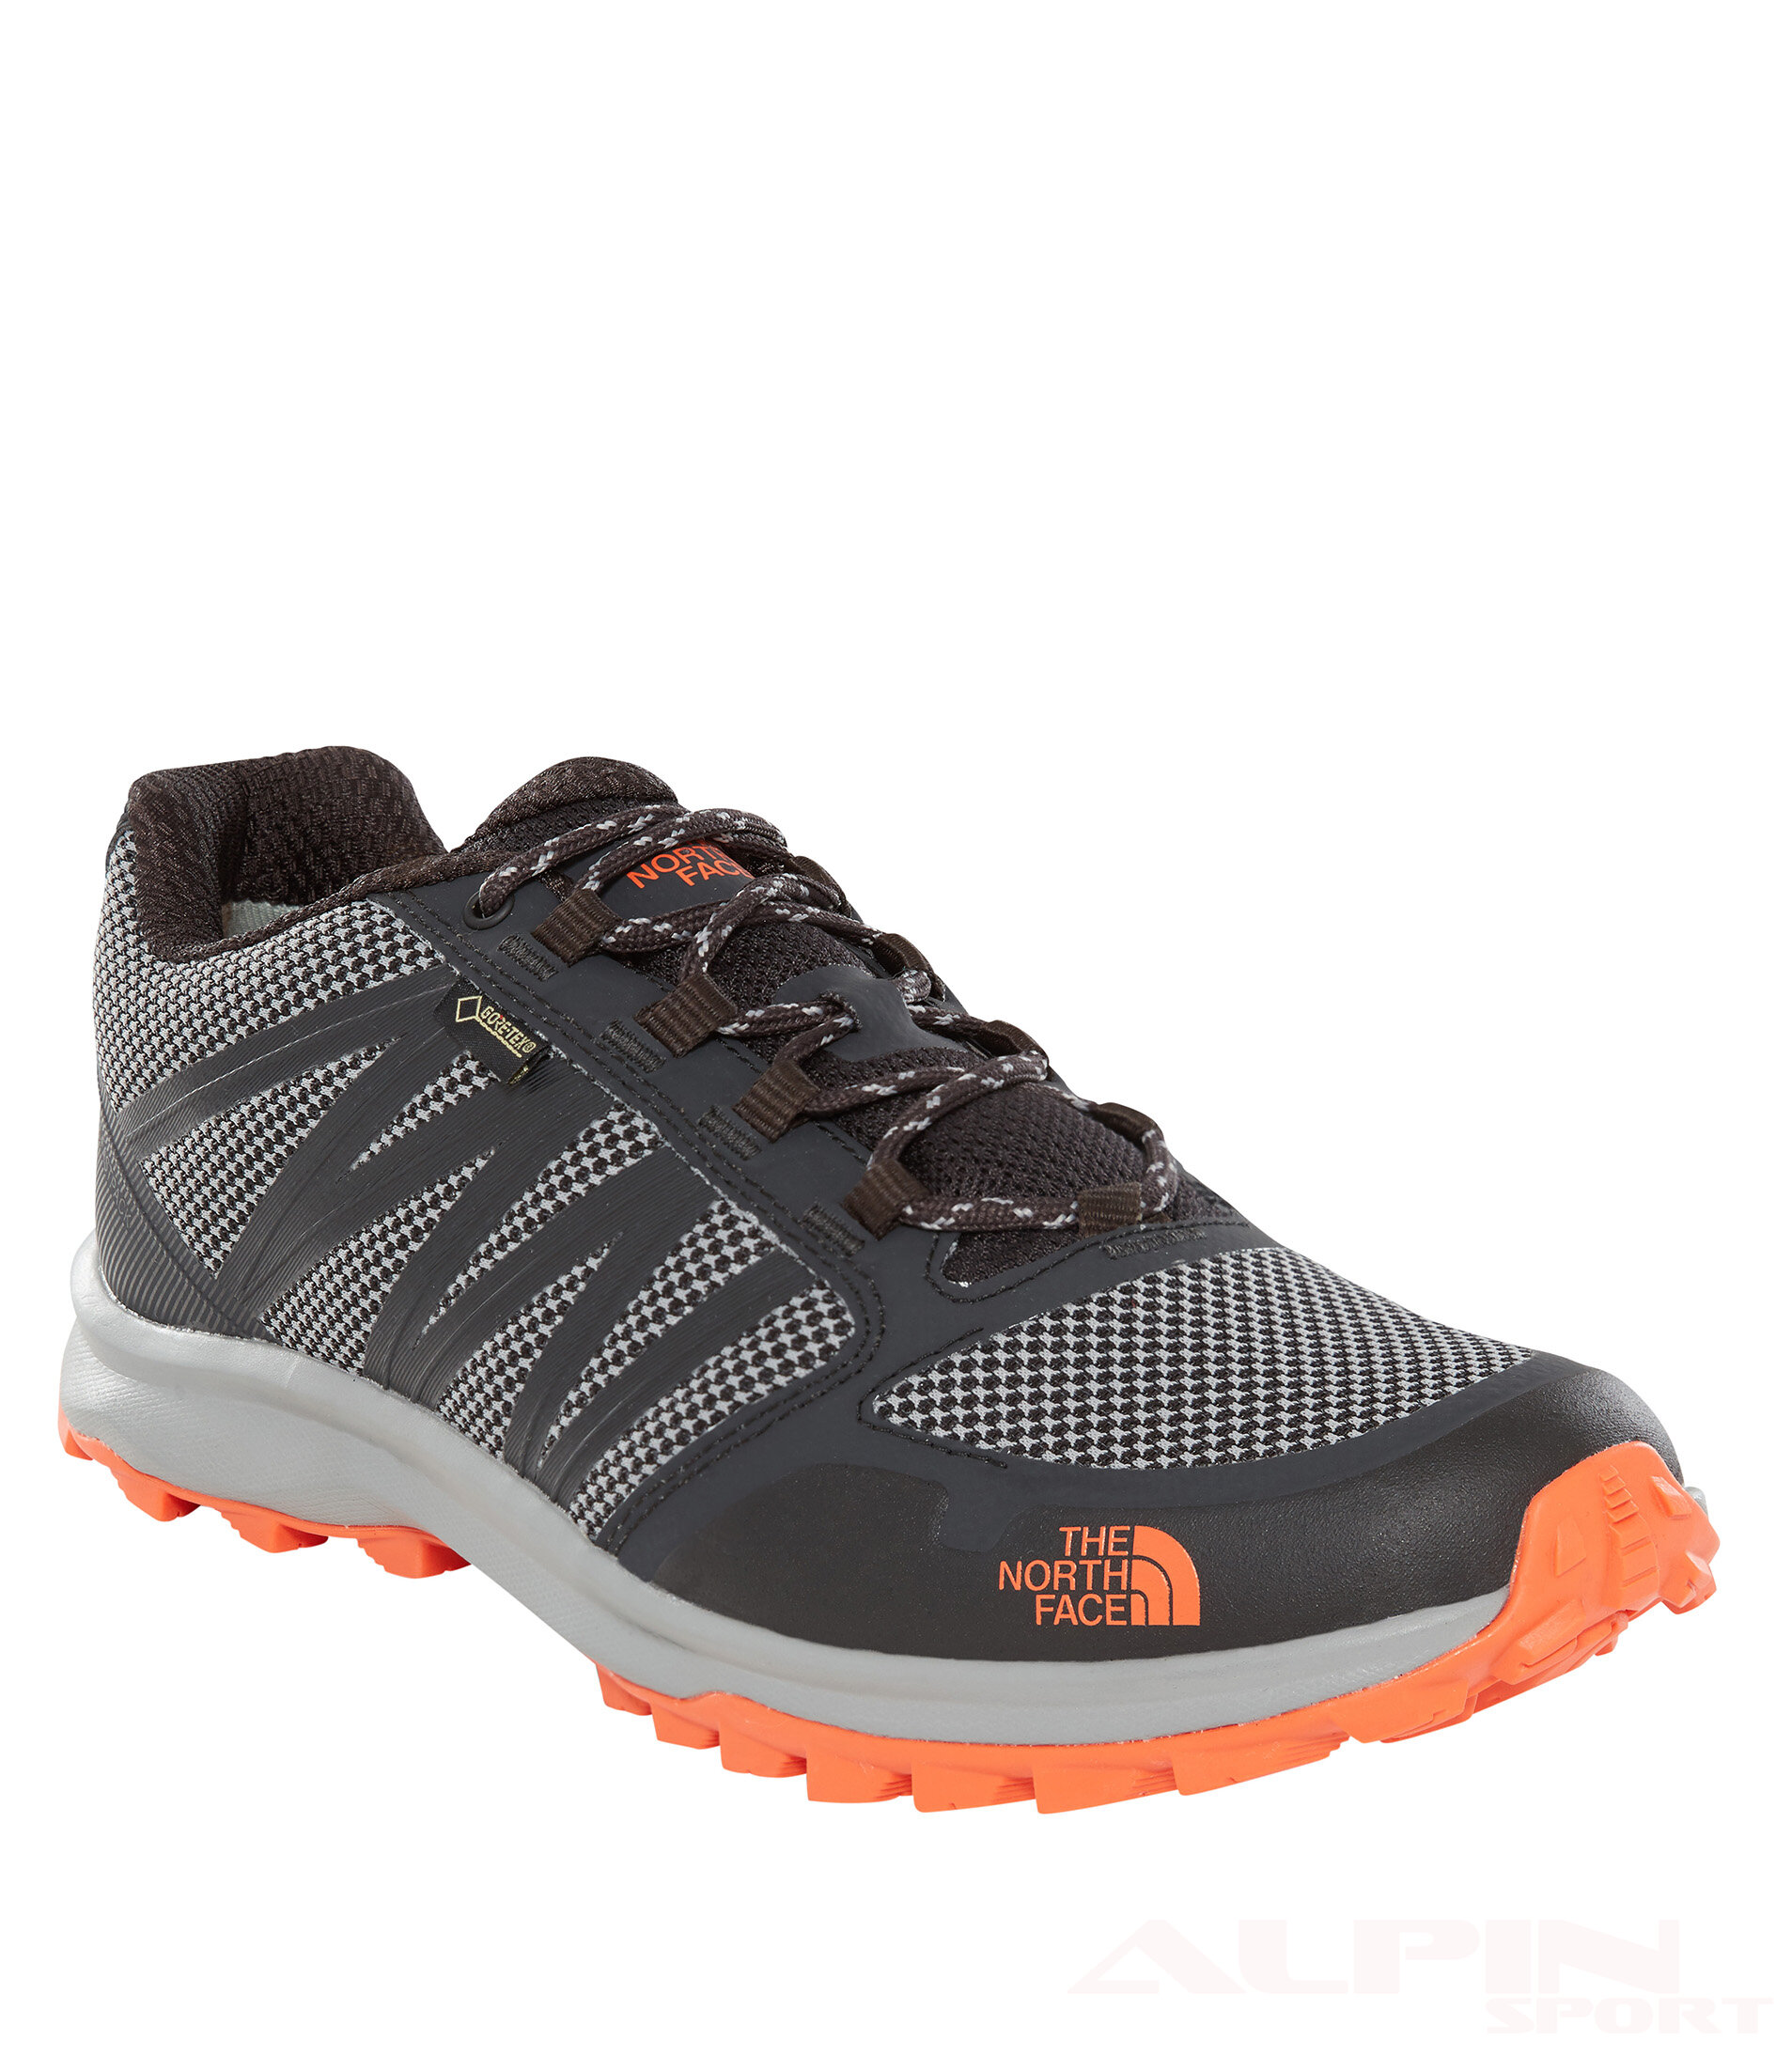 Buty męskie THE NORTH FACE Litewave Fastpack GTX 001_LO_3FX4 5RB 1